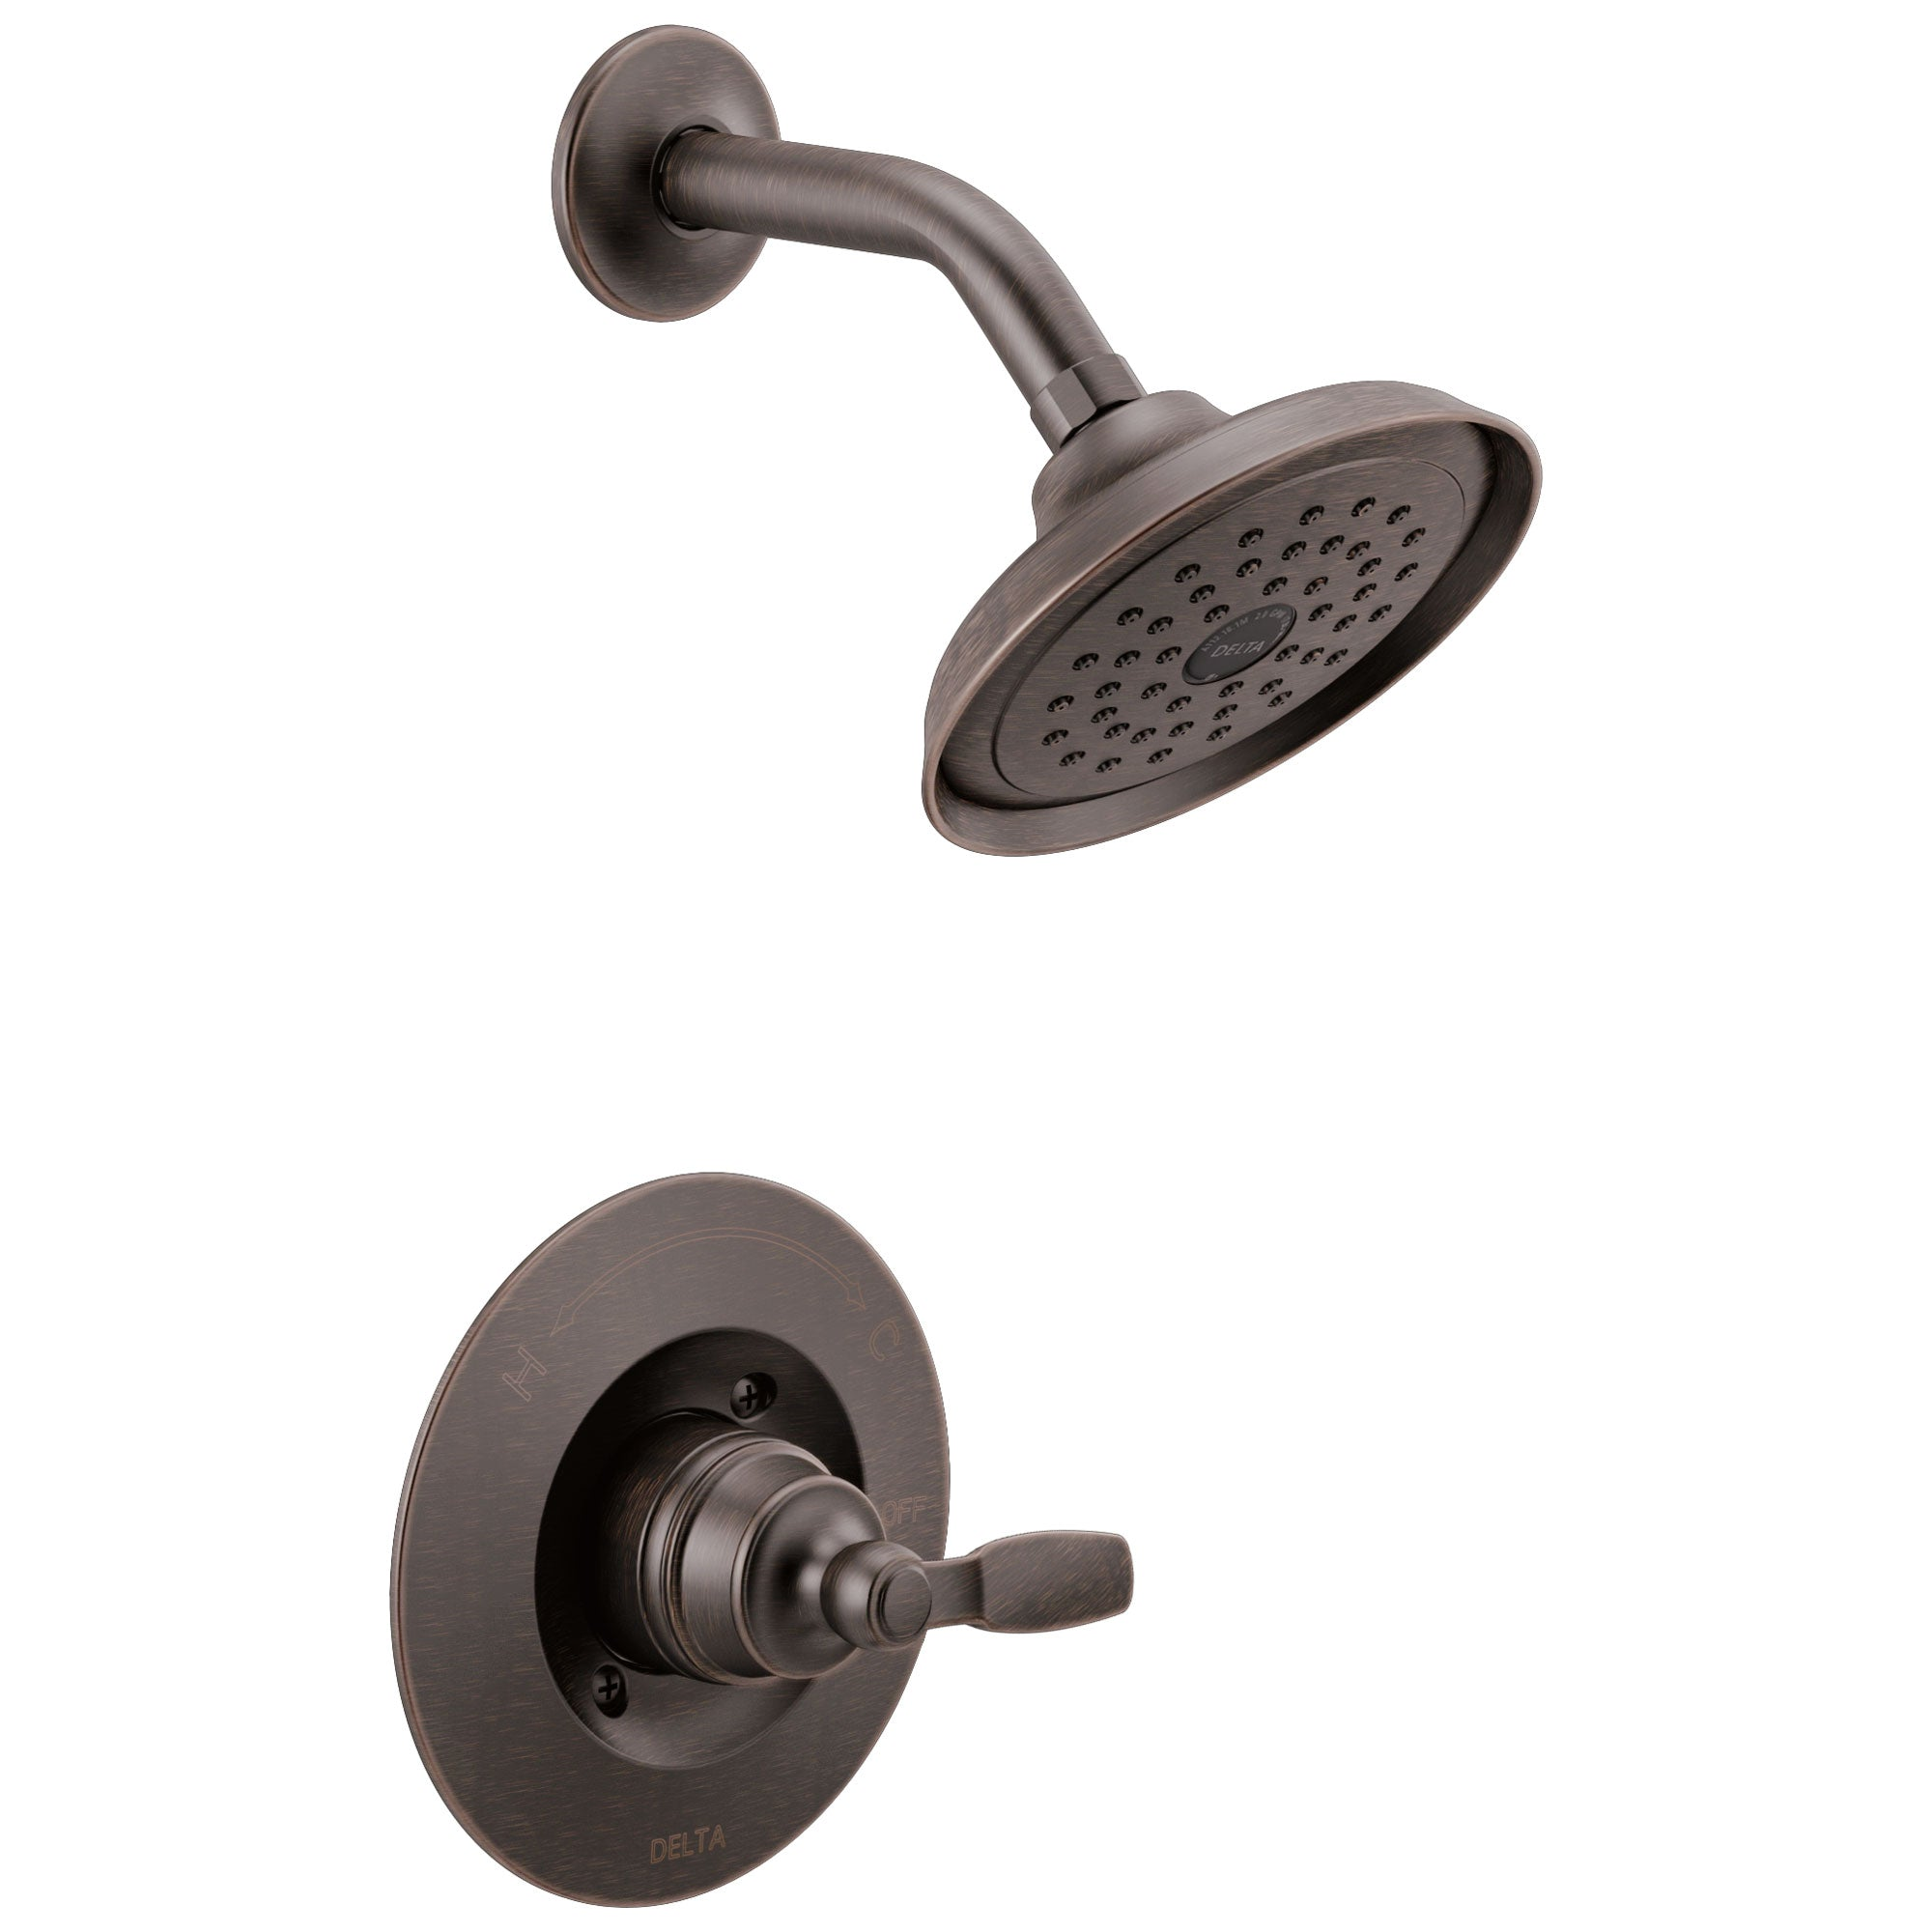 Delta Woodhurst Venetian Bronze Finish Shower only Faucet Includes Single Lever Handle, Cartridge, and Valve without Stops D3519V